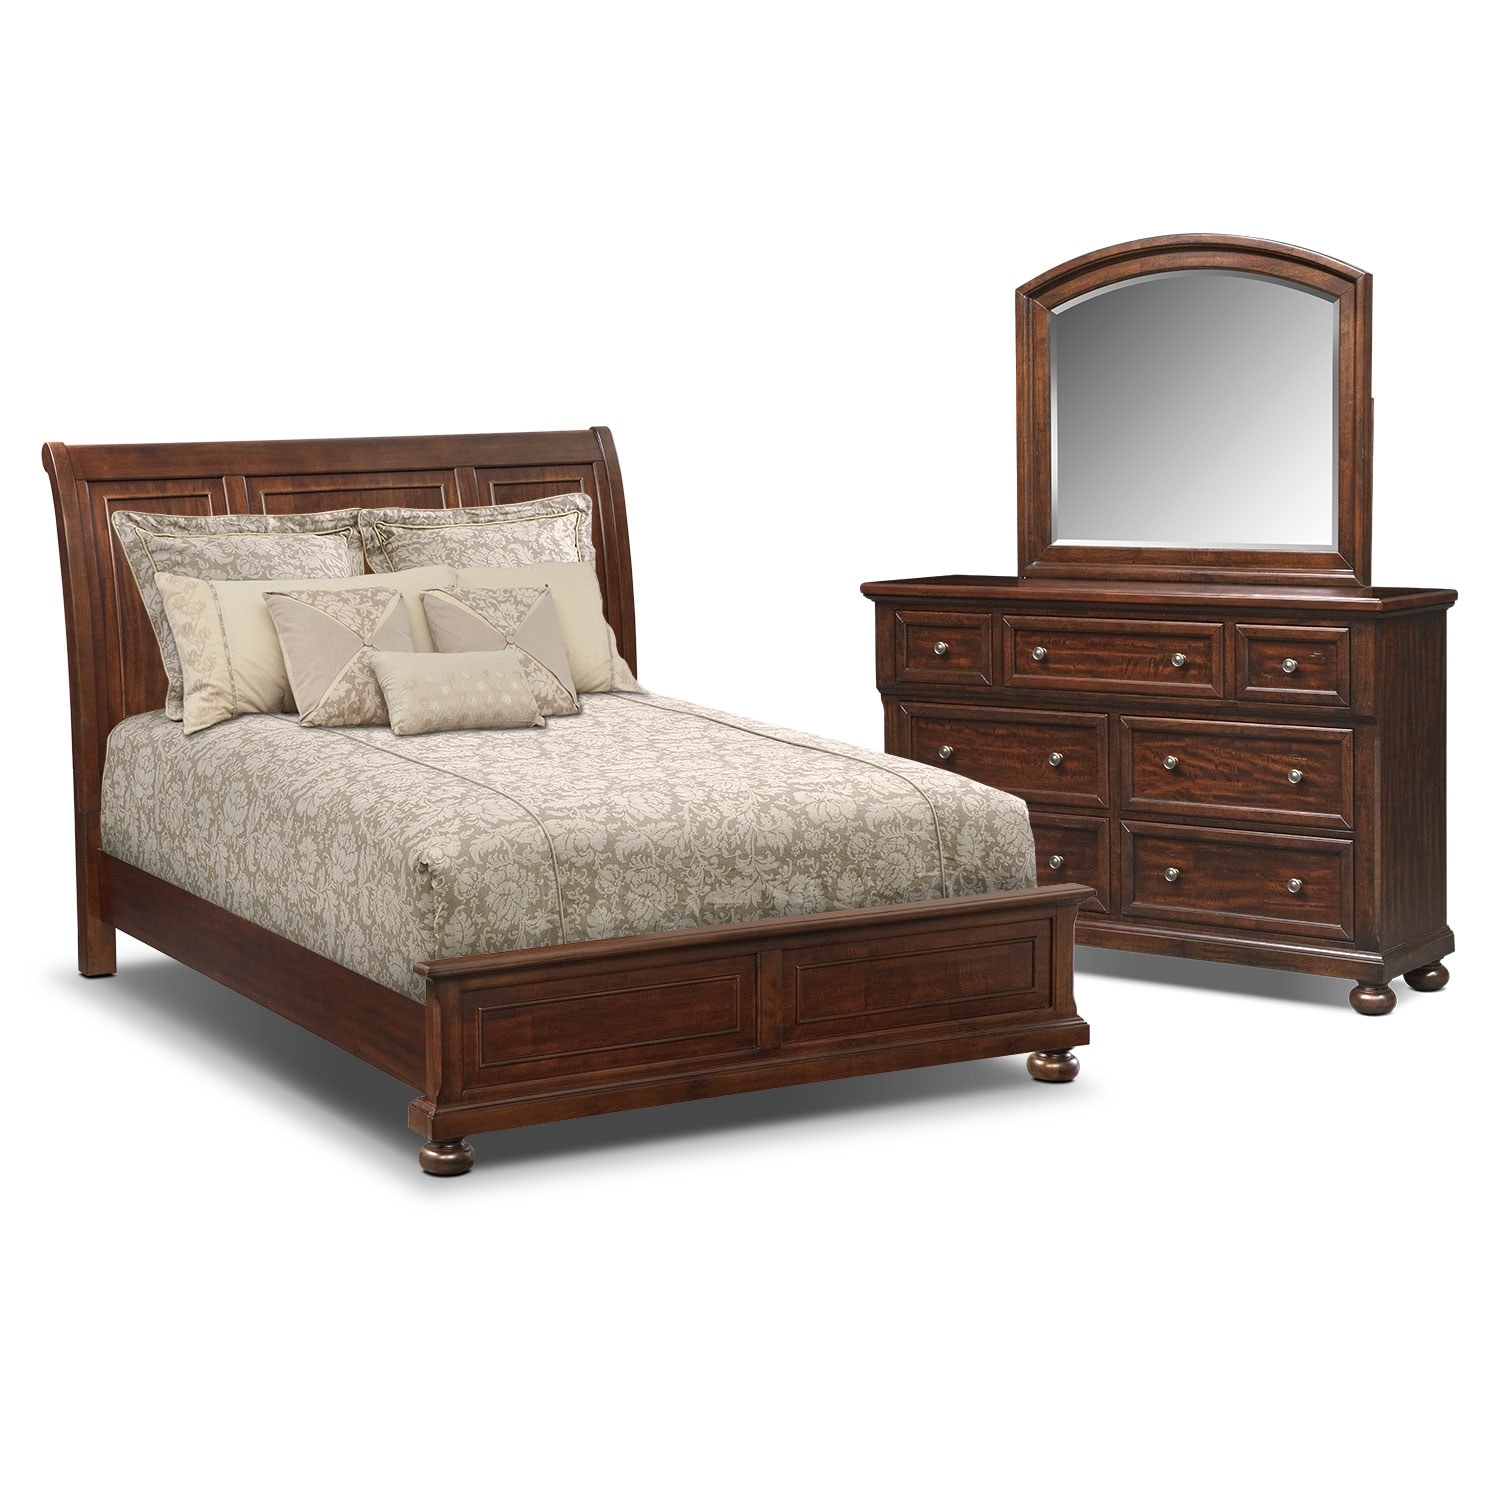 Hanover 5 Pc. Queen Panel Bedroom